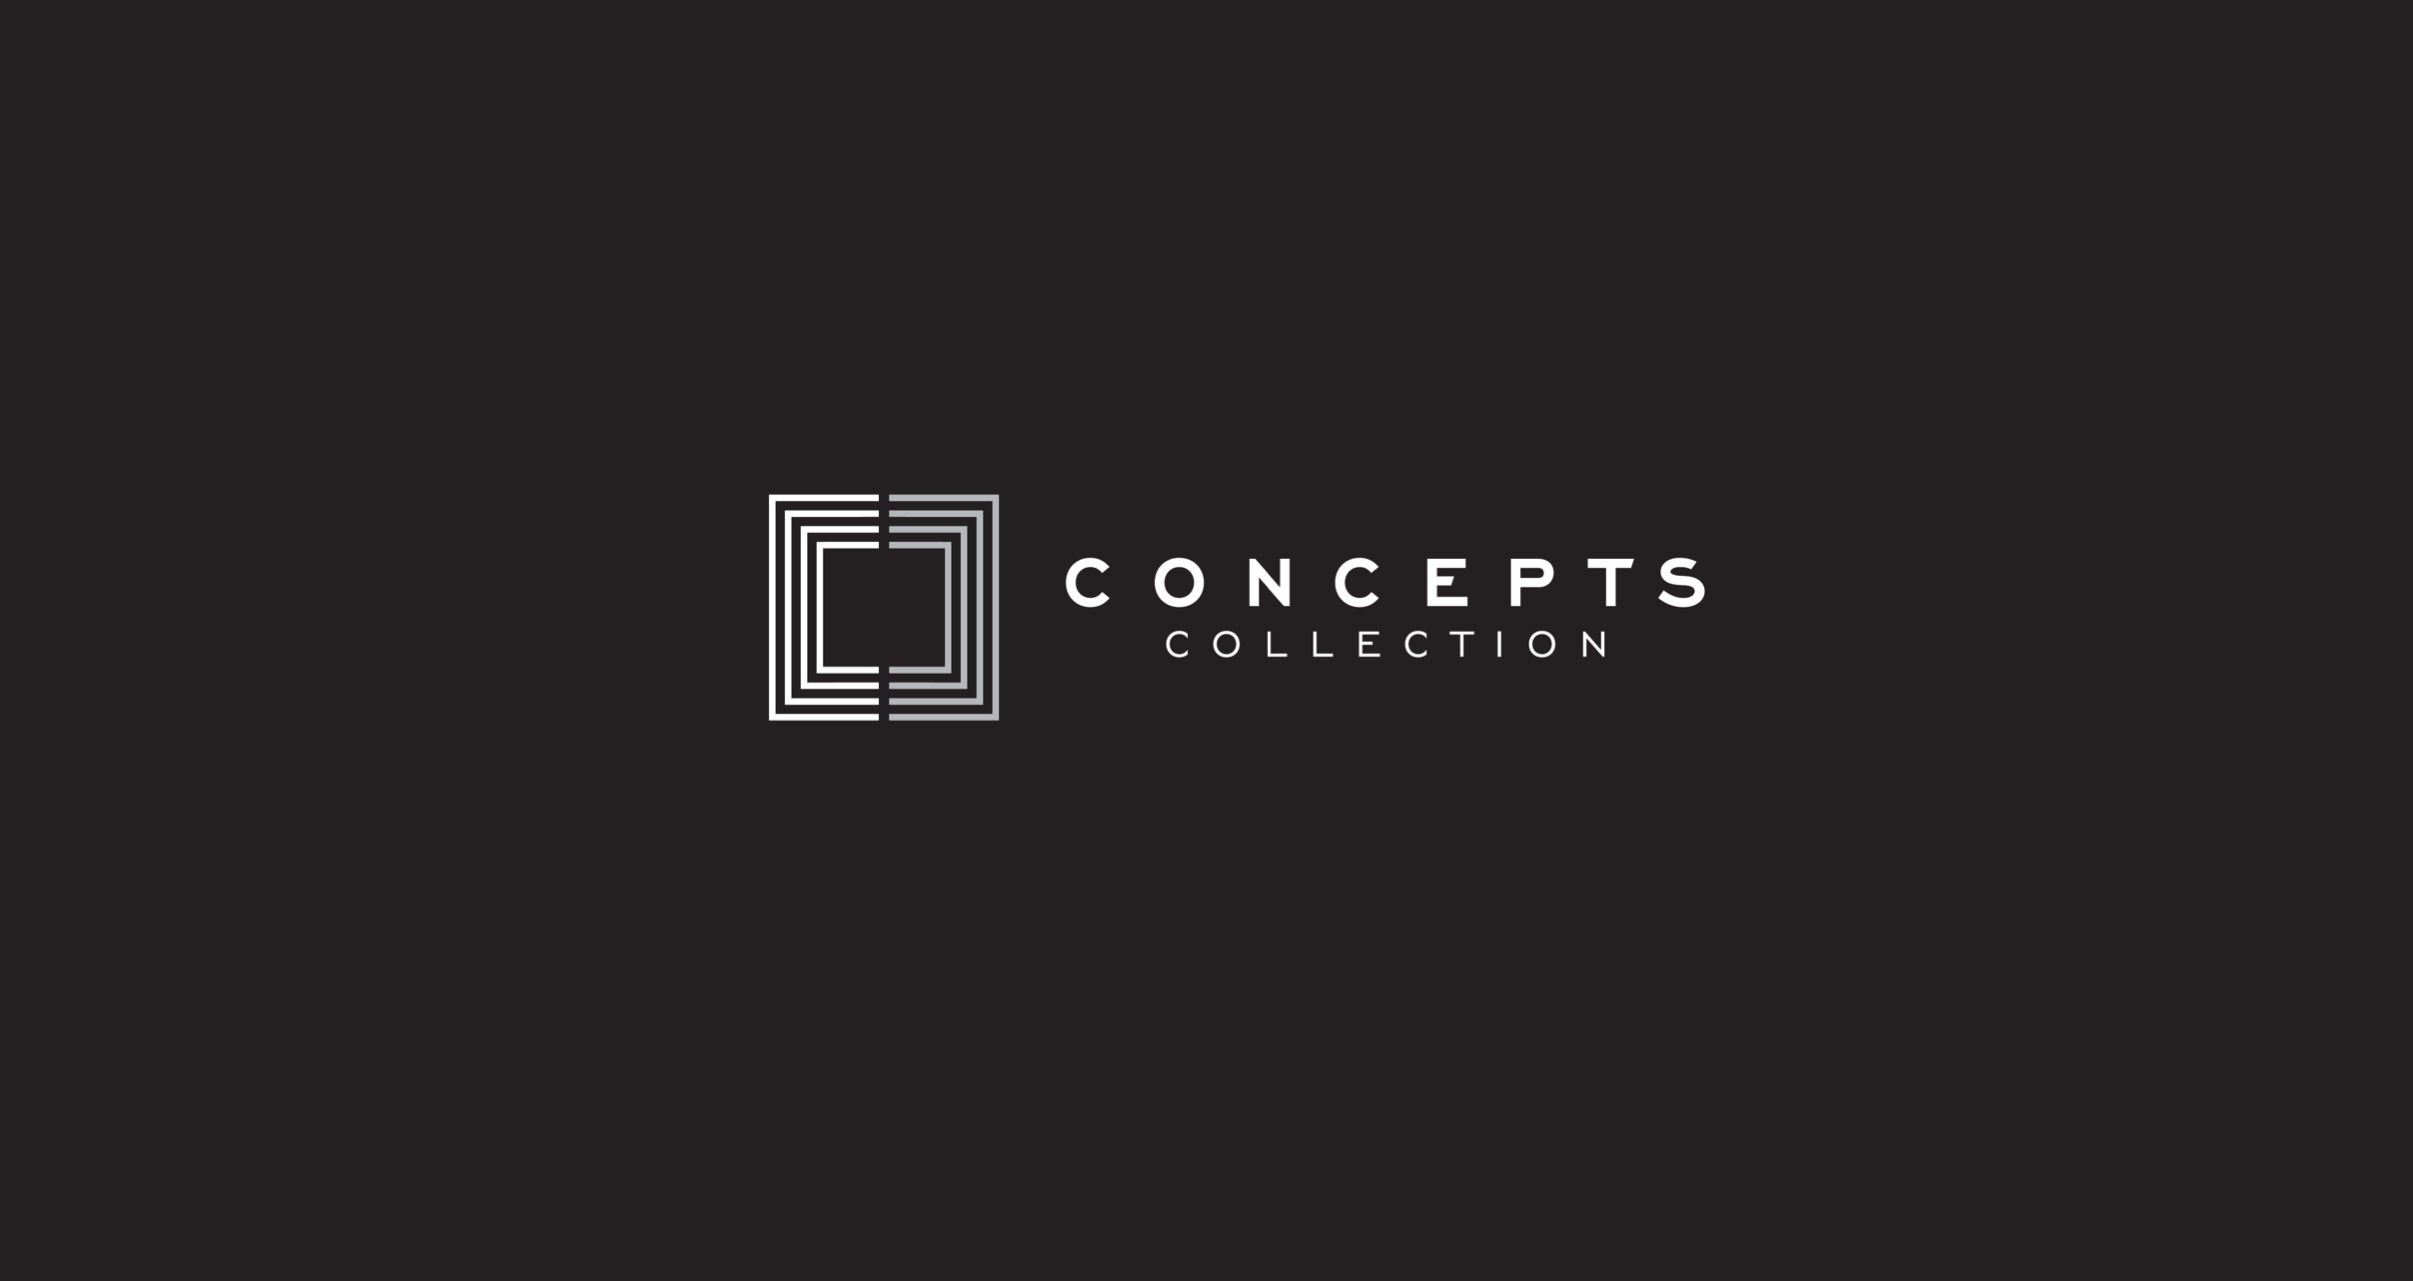 The Concepts Collection